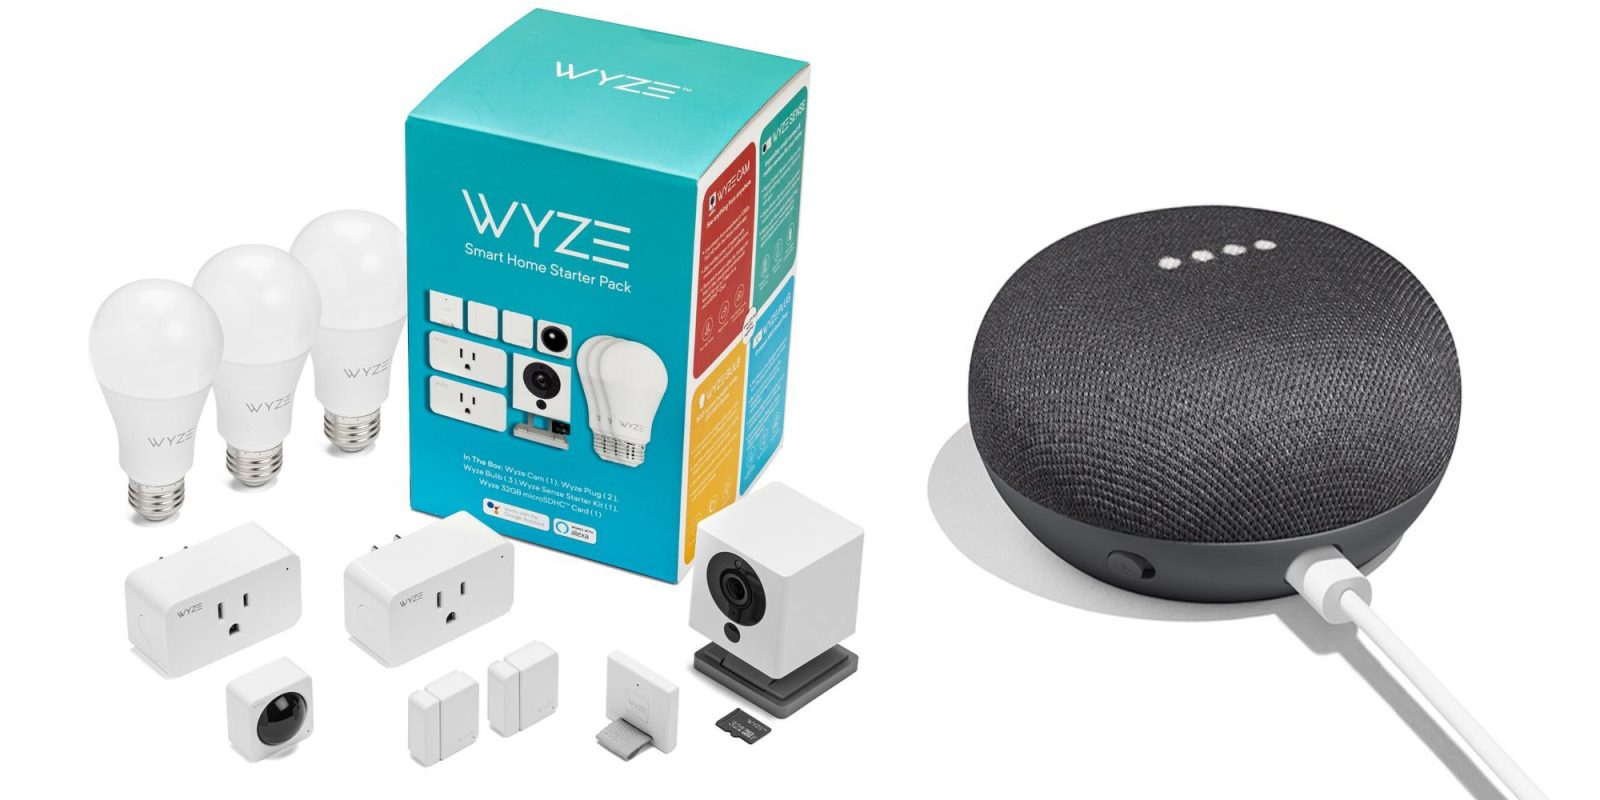 Score a Home Mini for free with Wyze's Smart Home Bundle at $109 ($158 value)